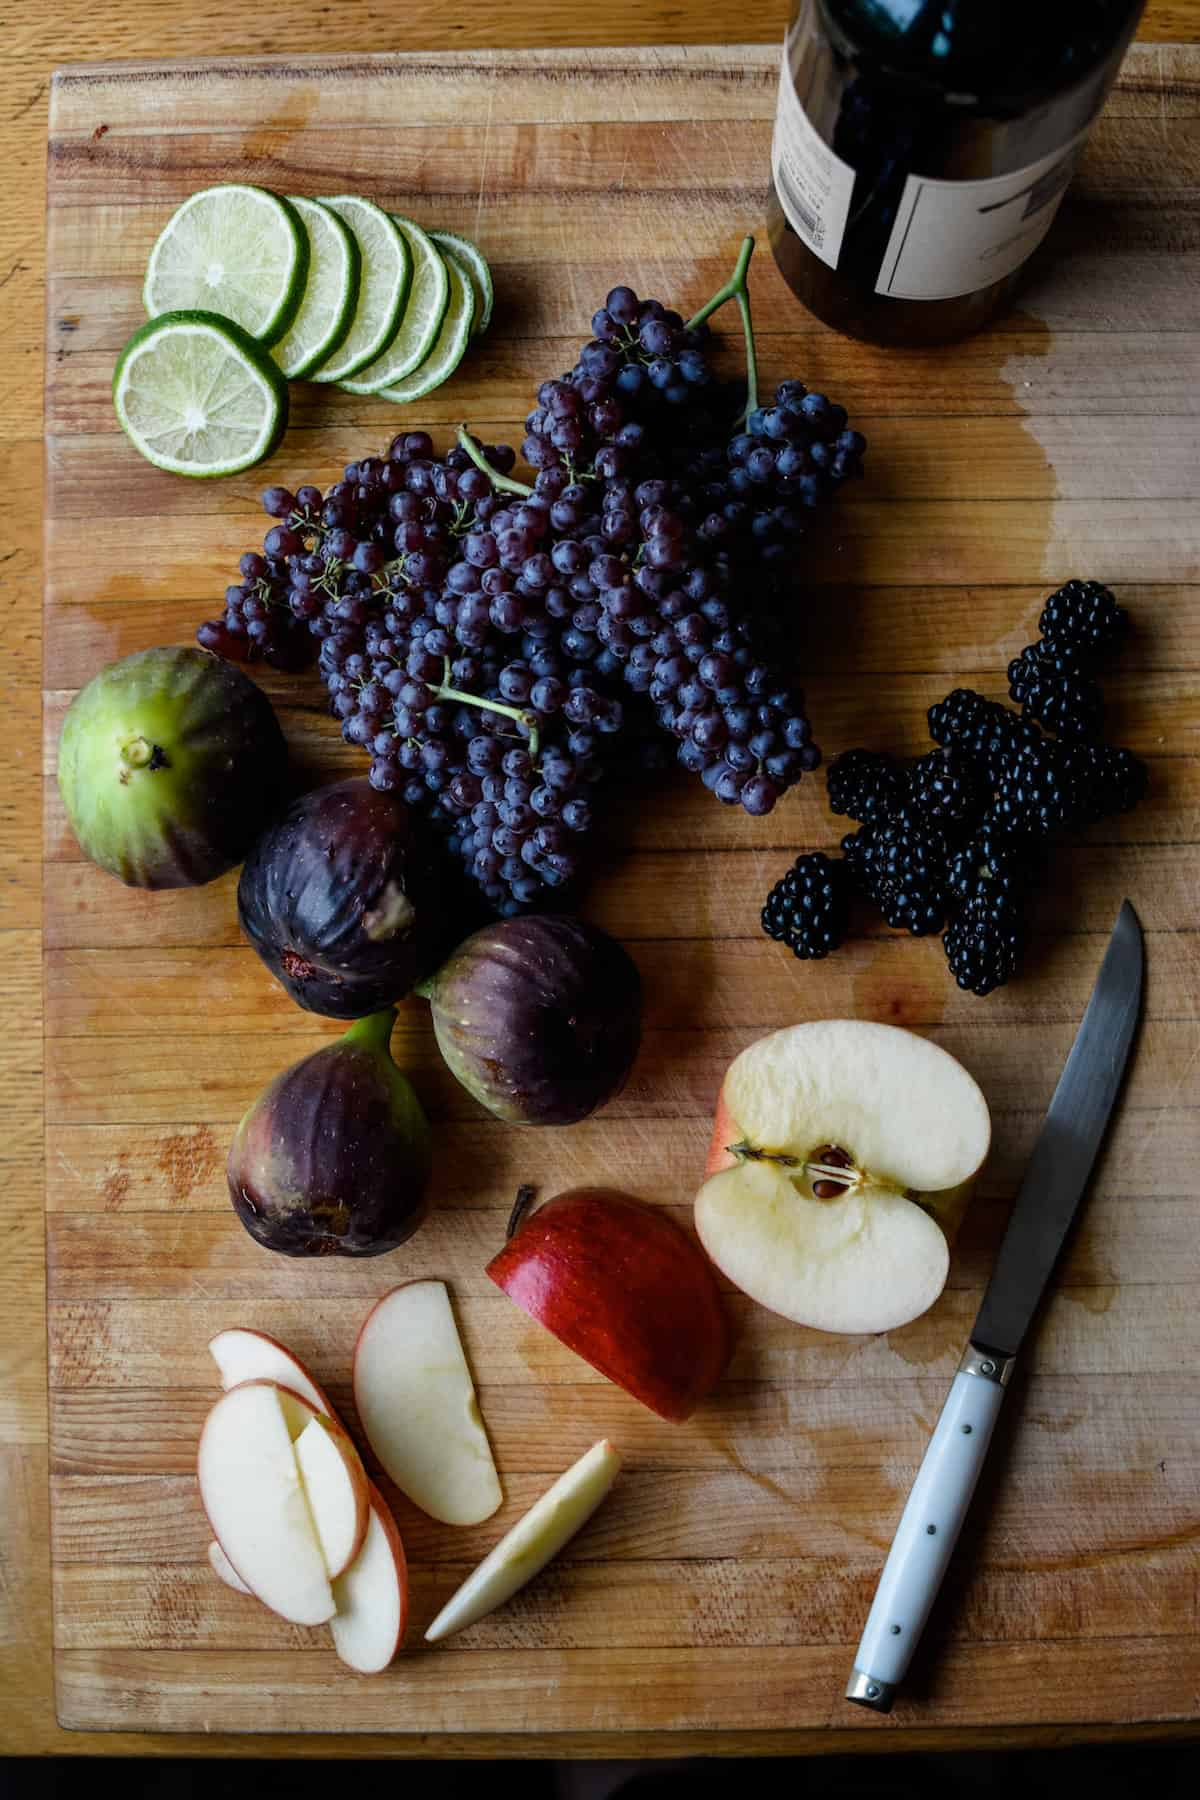 Sliced apples, figs, blackberries, miniature red grapes, lime slices, and a bottle of wine sitting on a wood cutting board.